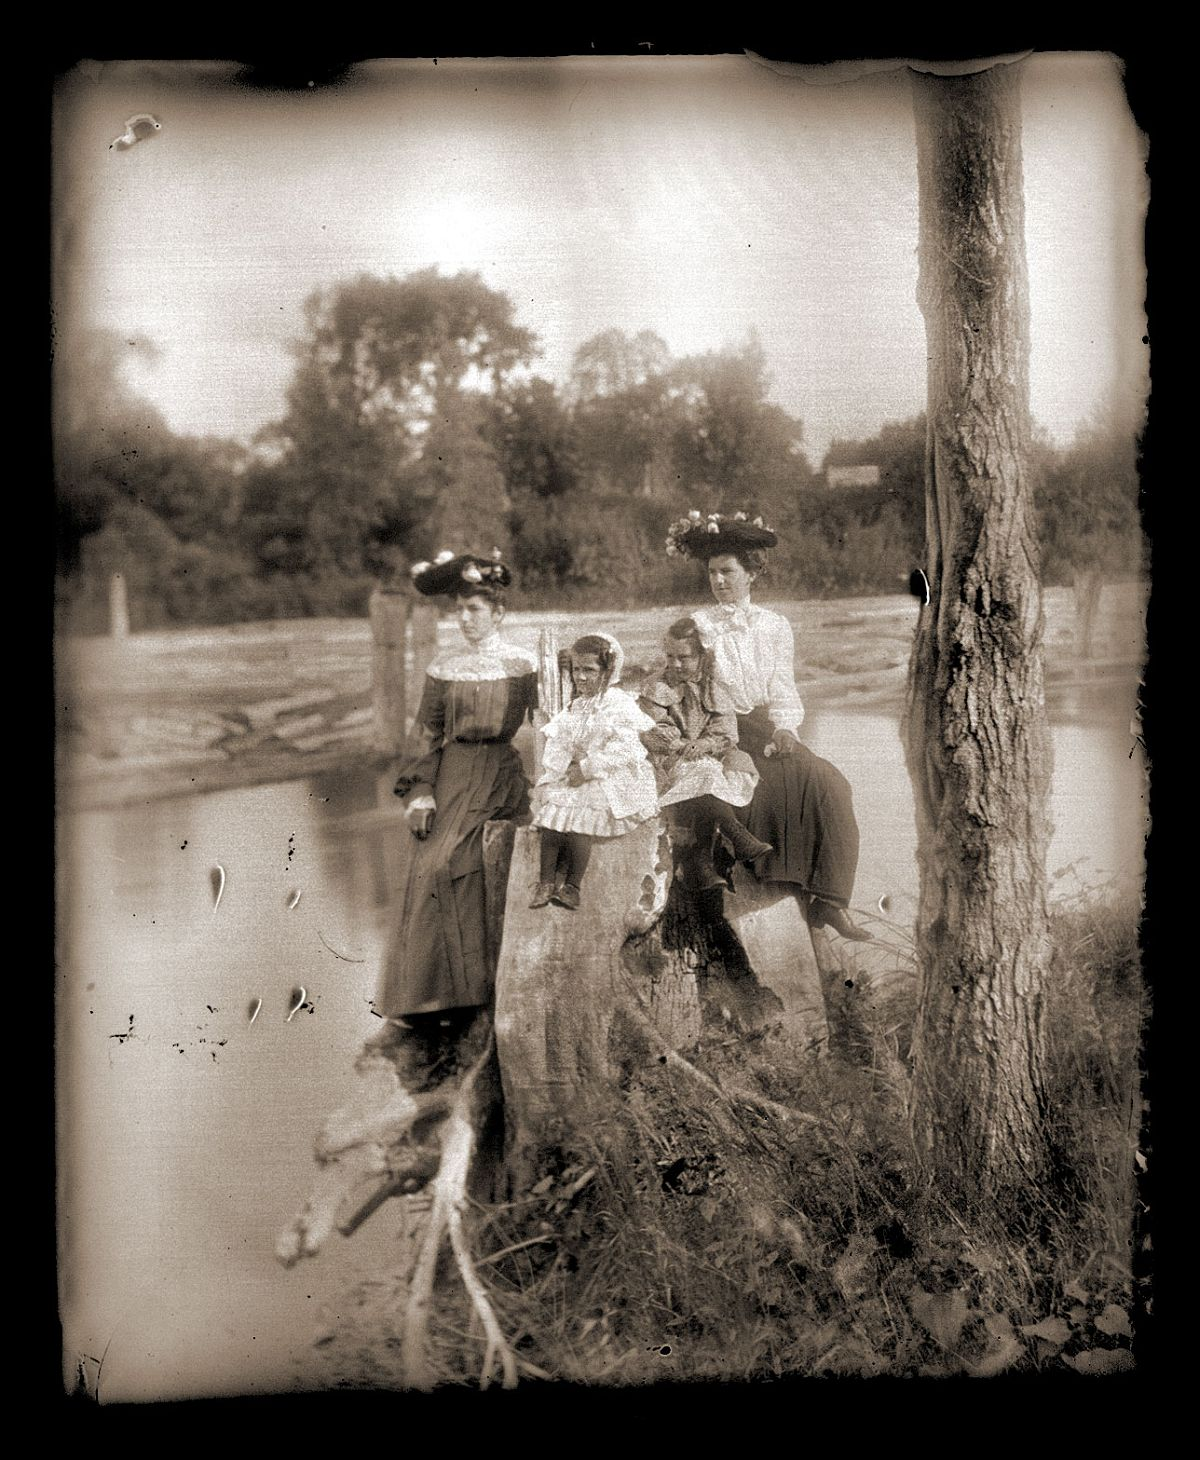 Women and girls posing on a stump by a river